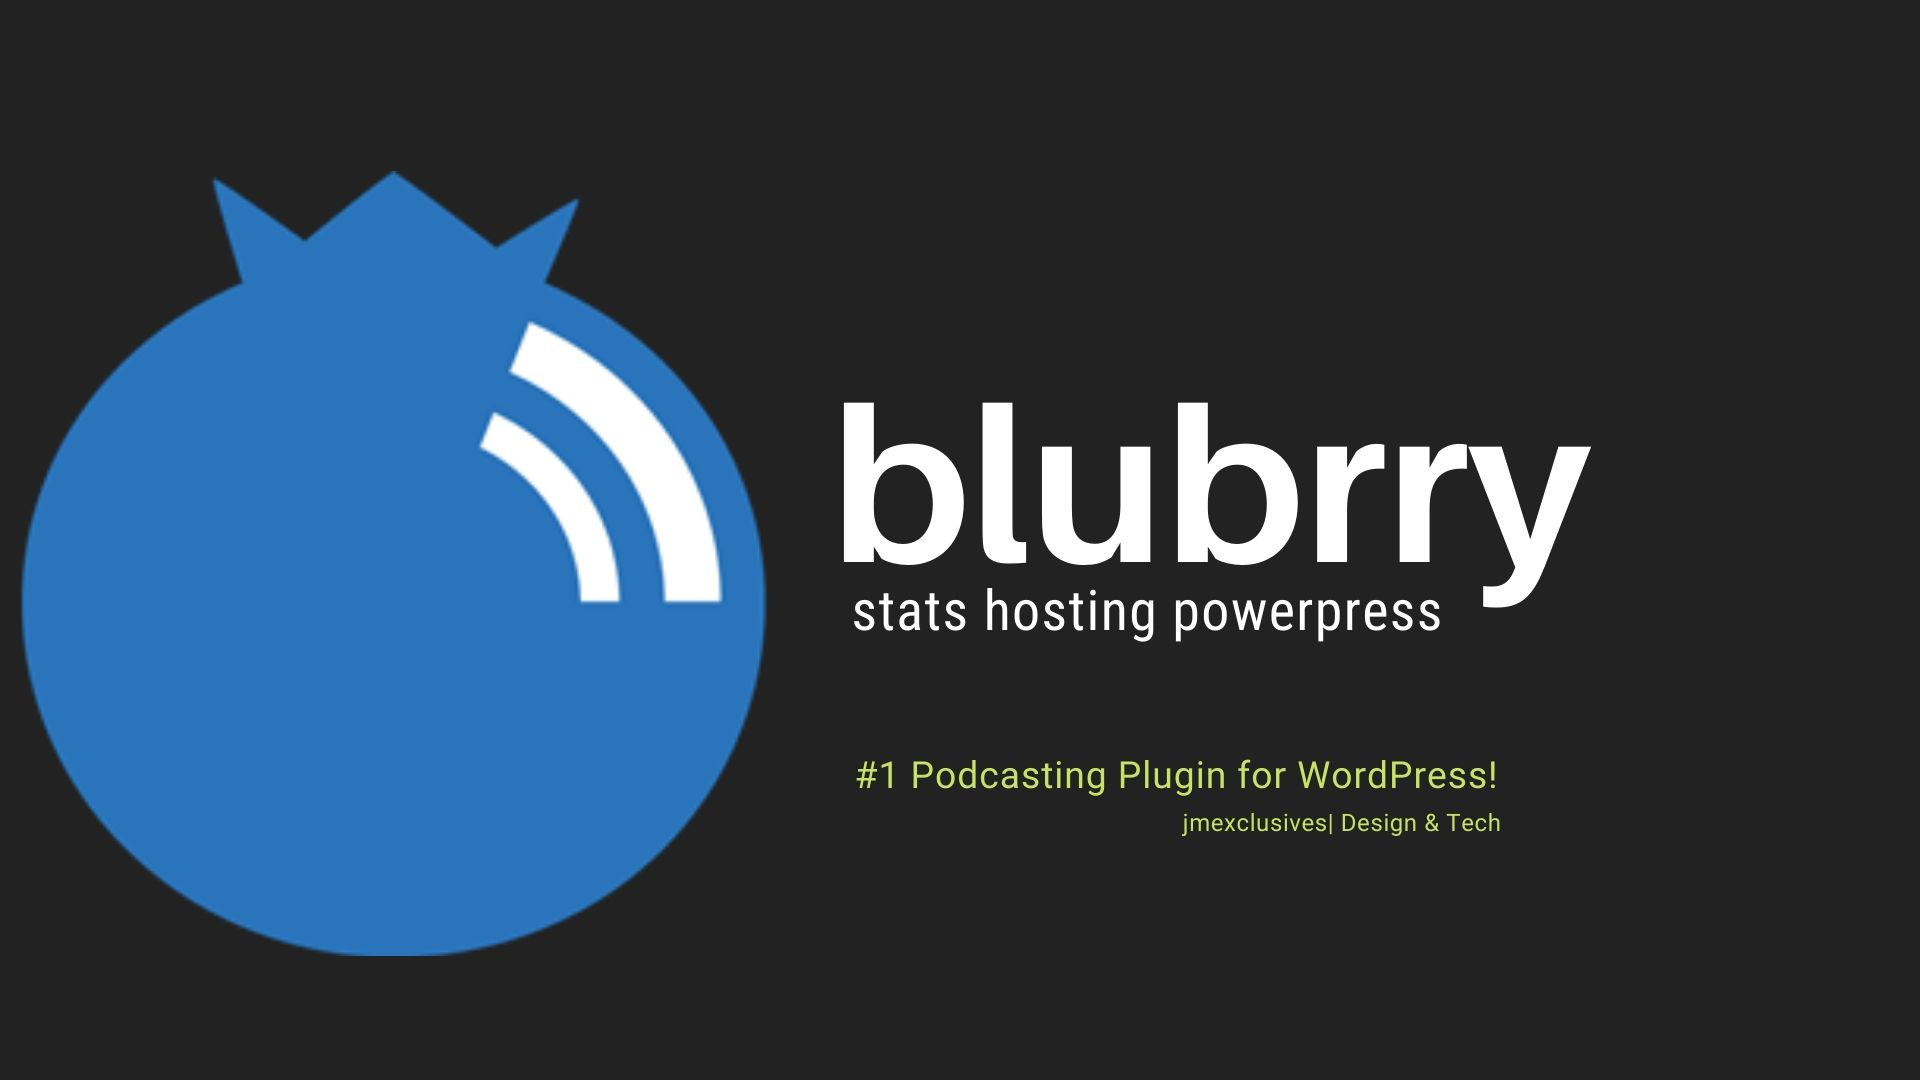 What is Blubrry?